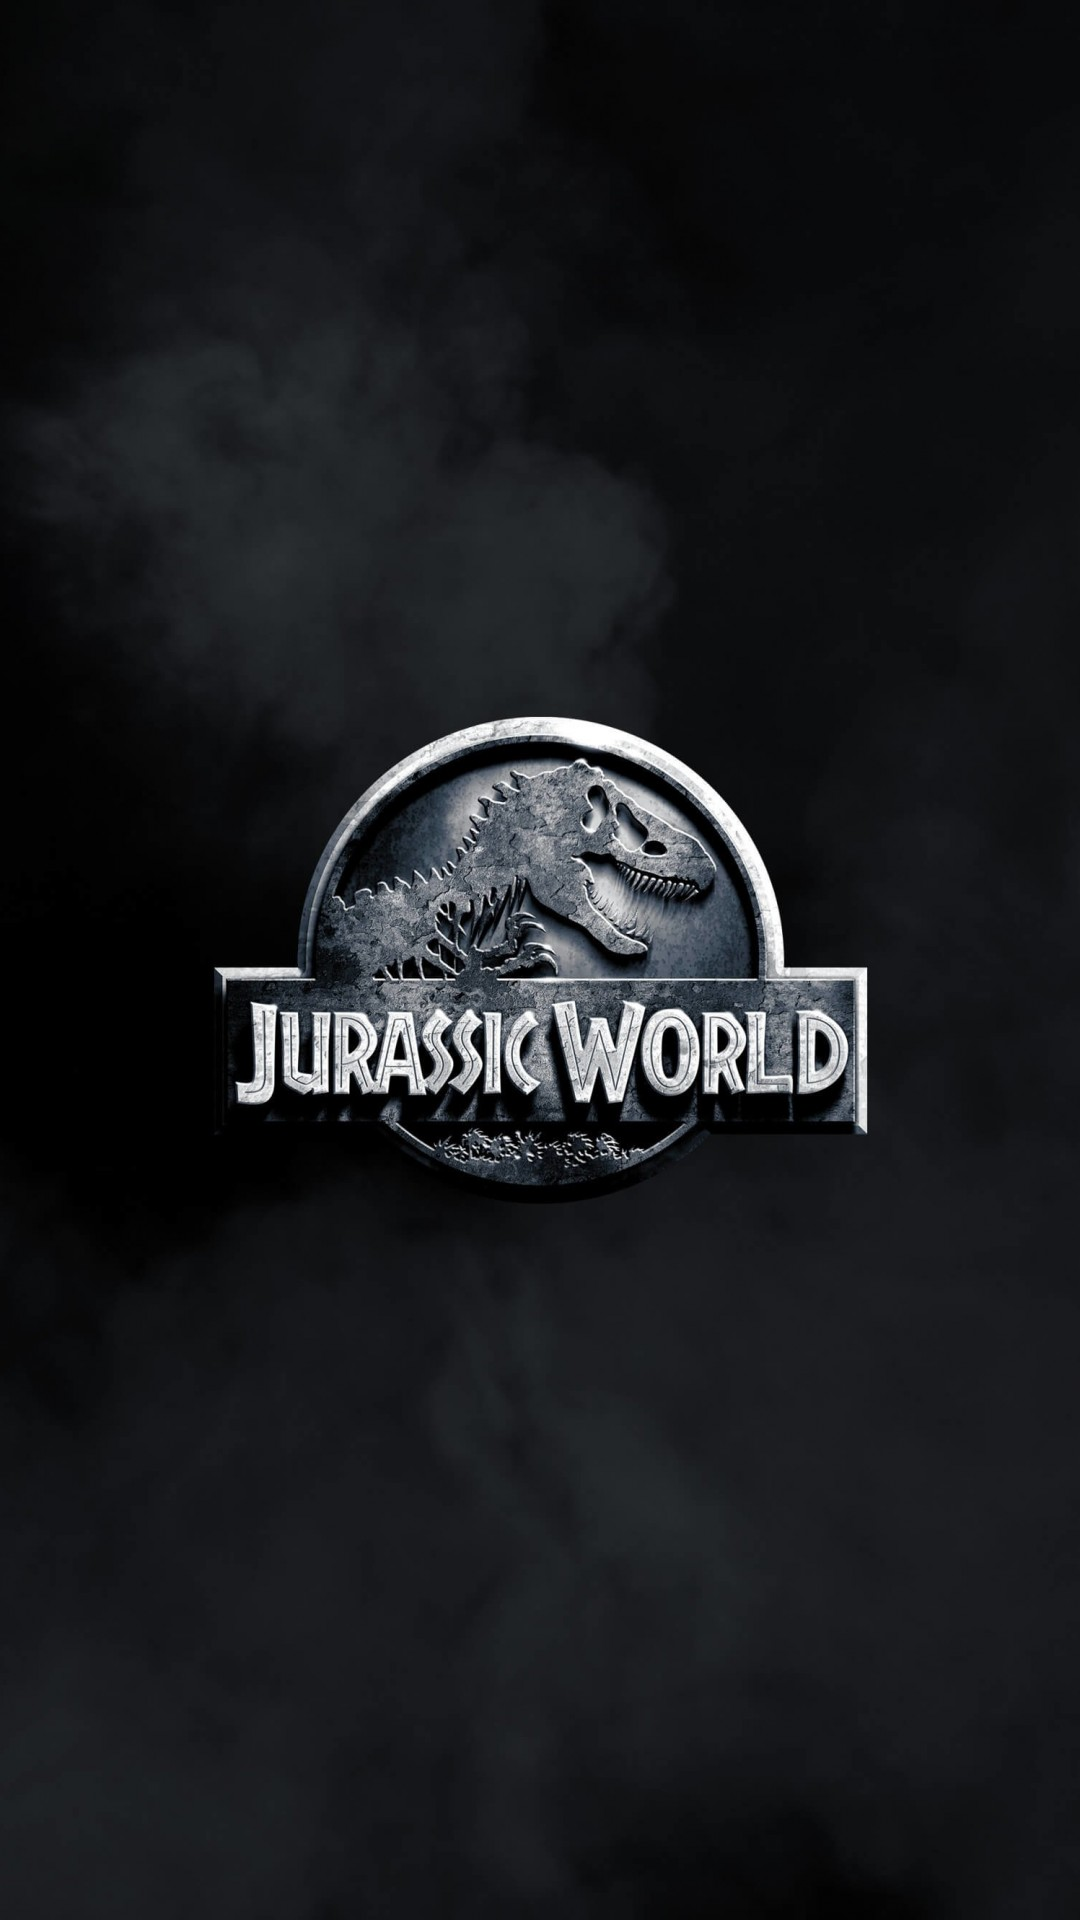 Jurassic World Wallpaper for SONY Xperia Z3